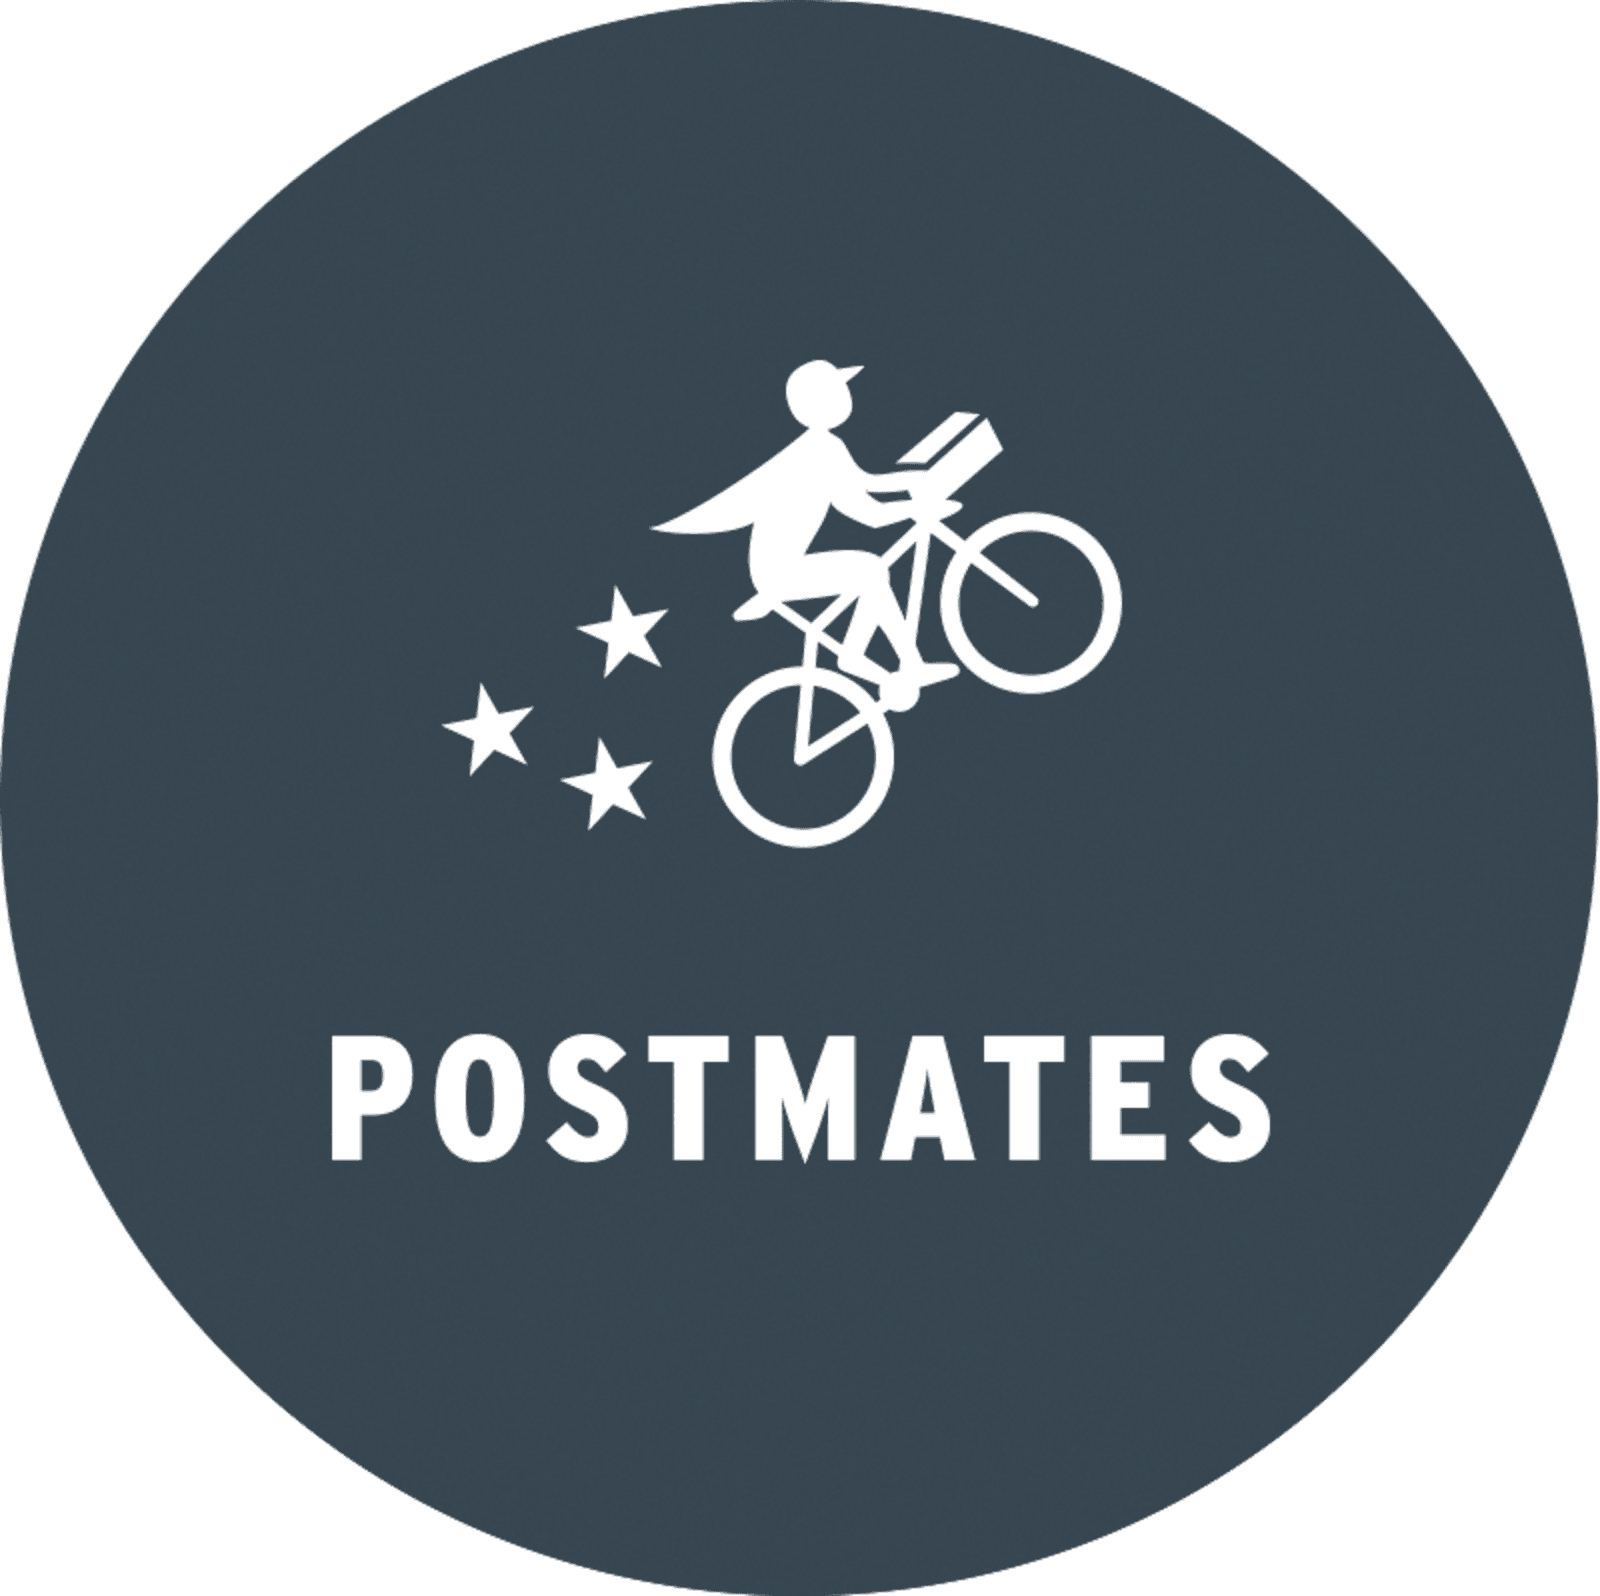 Signup for delivery by Postmates